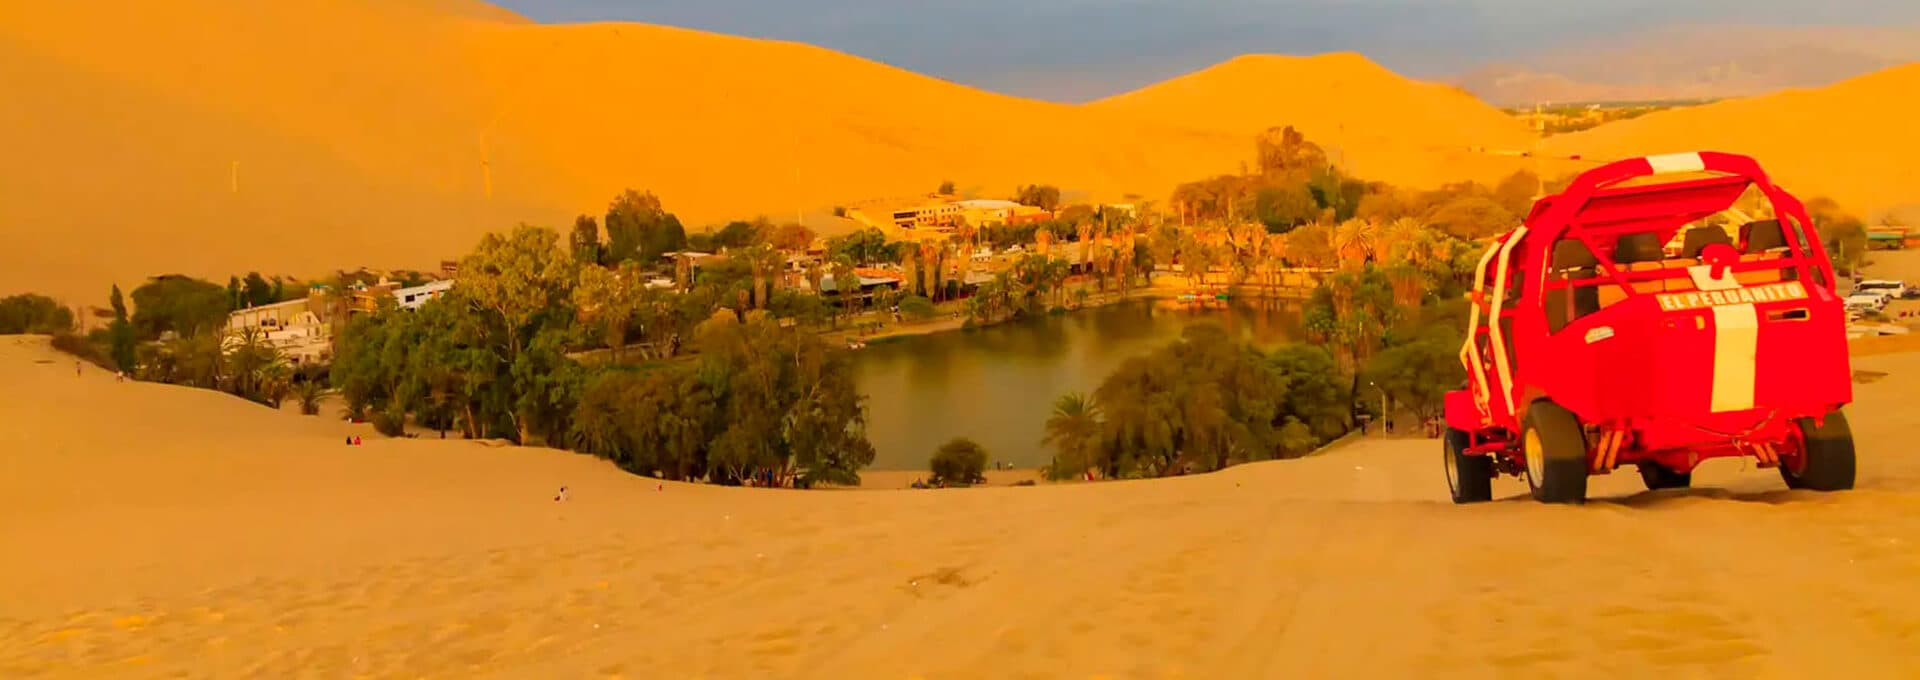 Huacachina in ica